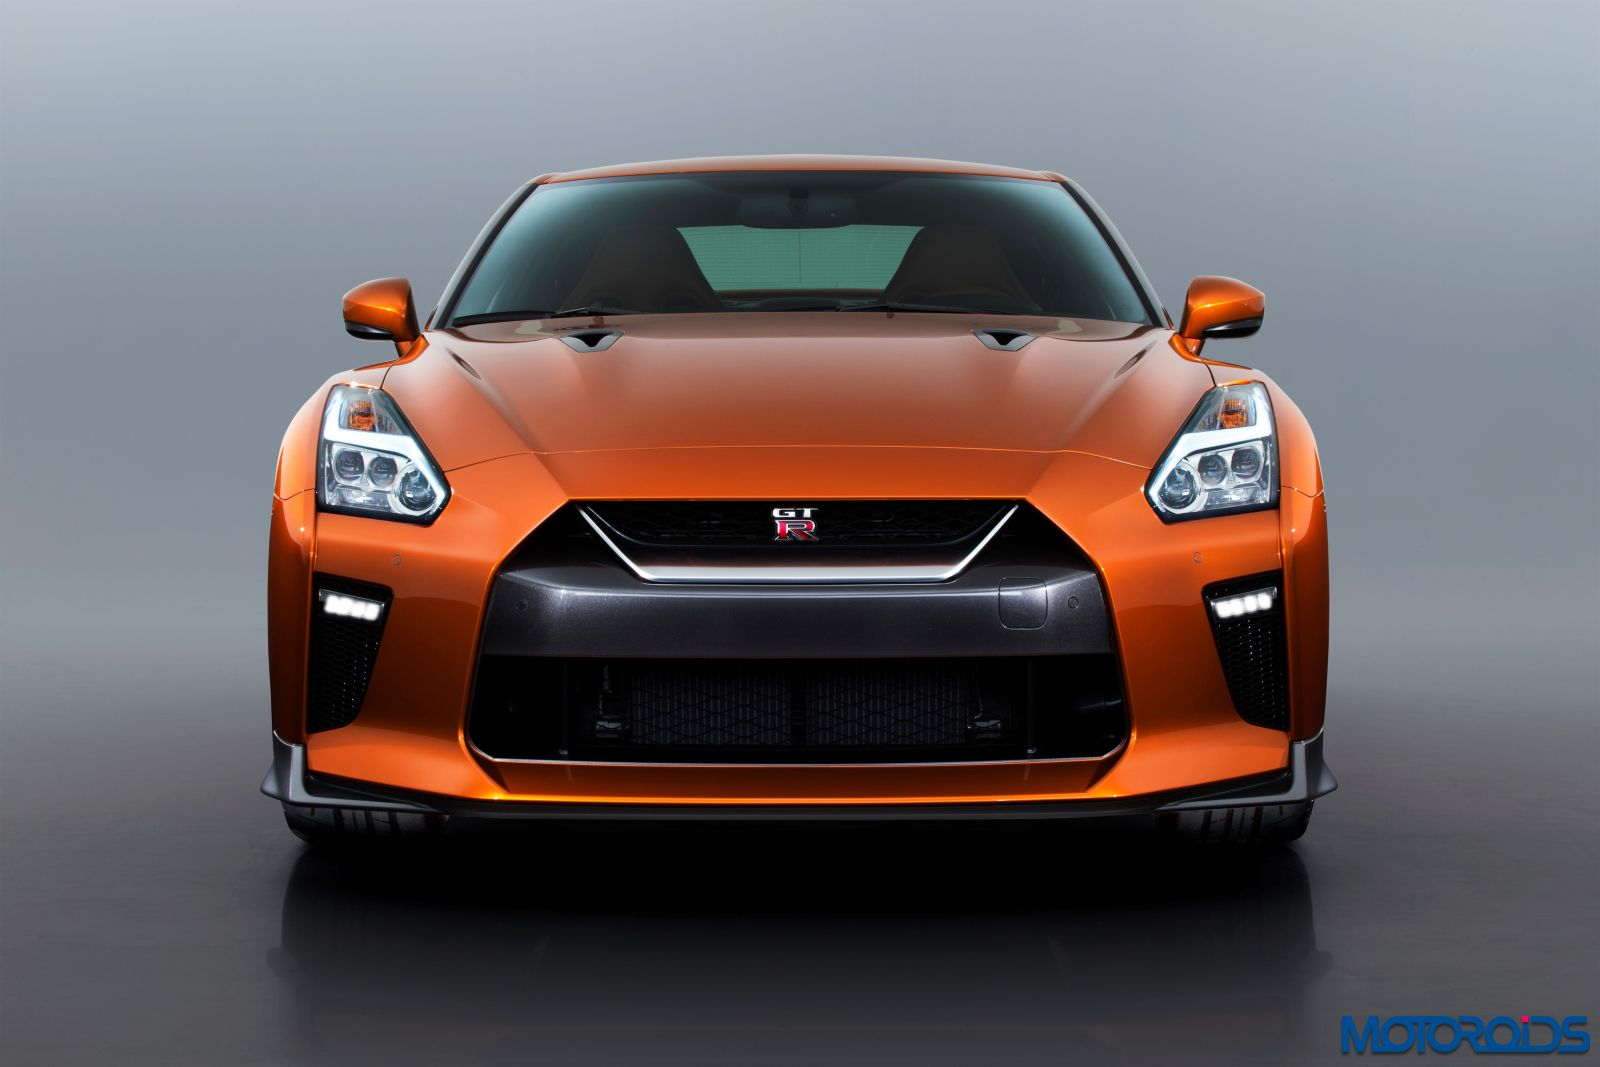 New 2017 Nissan GT-R - Exterior (2)